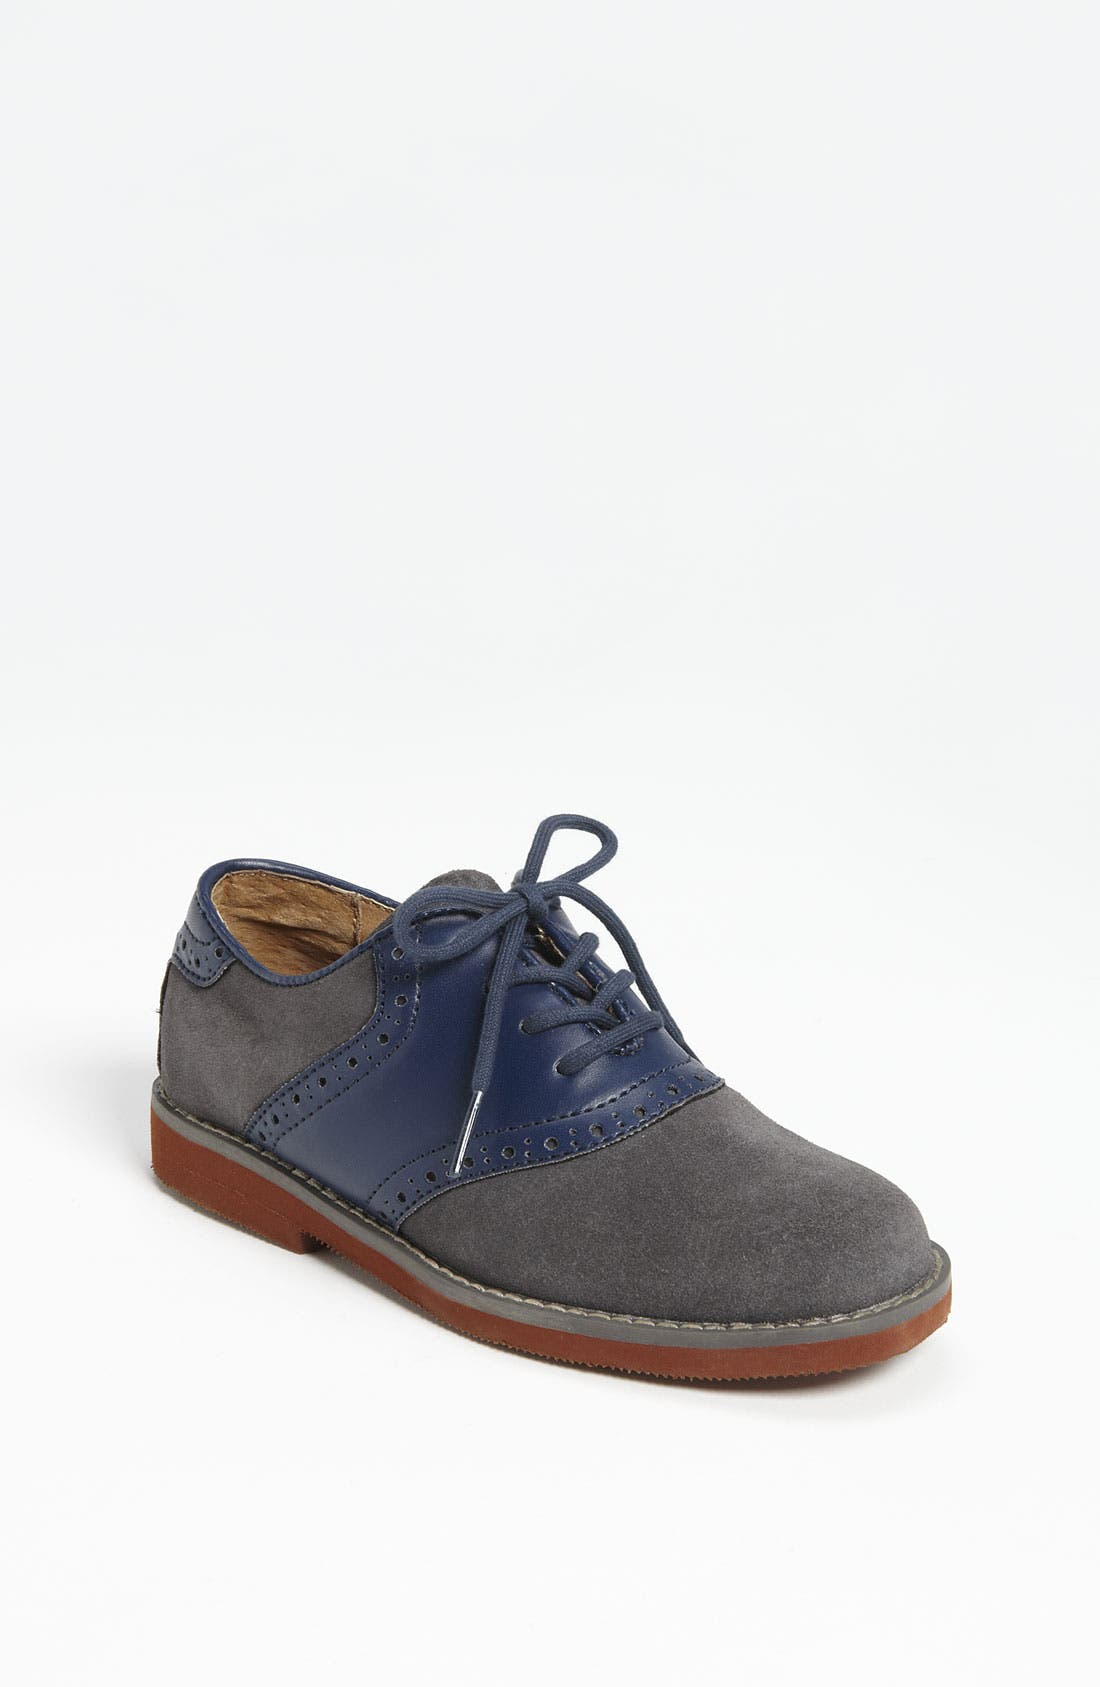 Main Image - Florsheim 'Kennett' Oxford (Toddler, Little Kid & Big Kid)